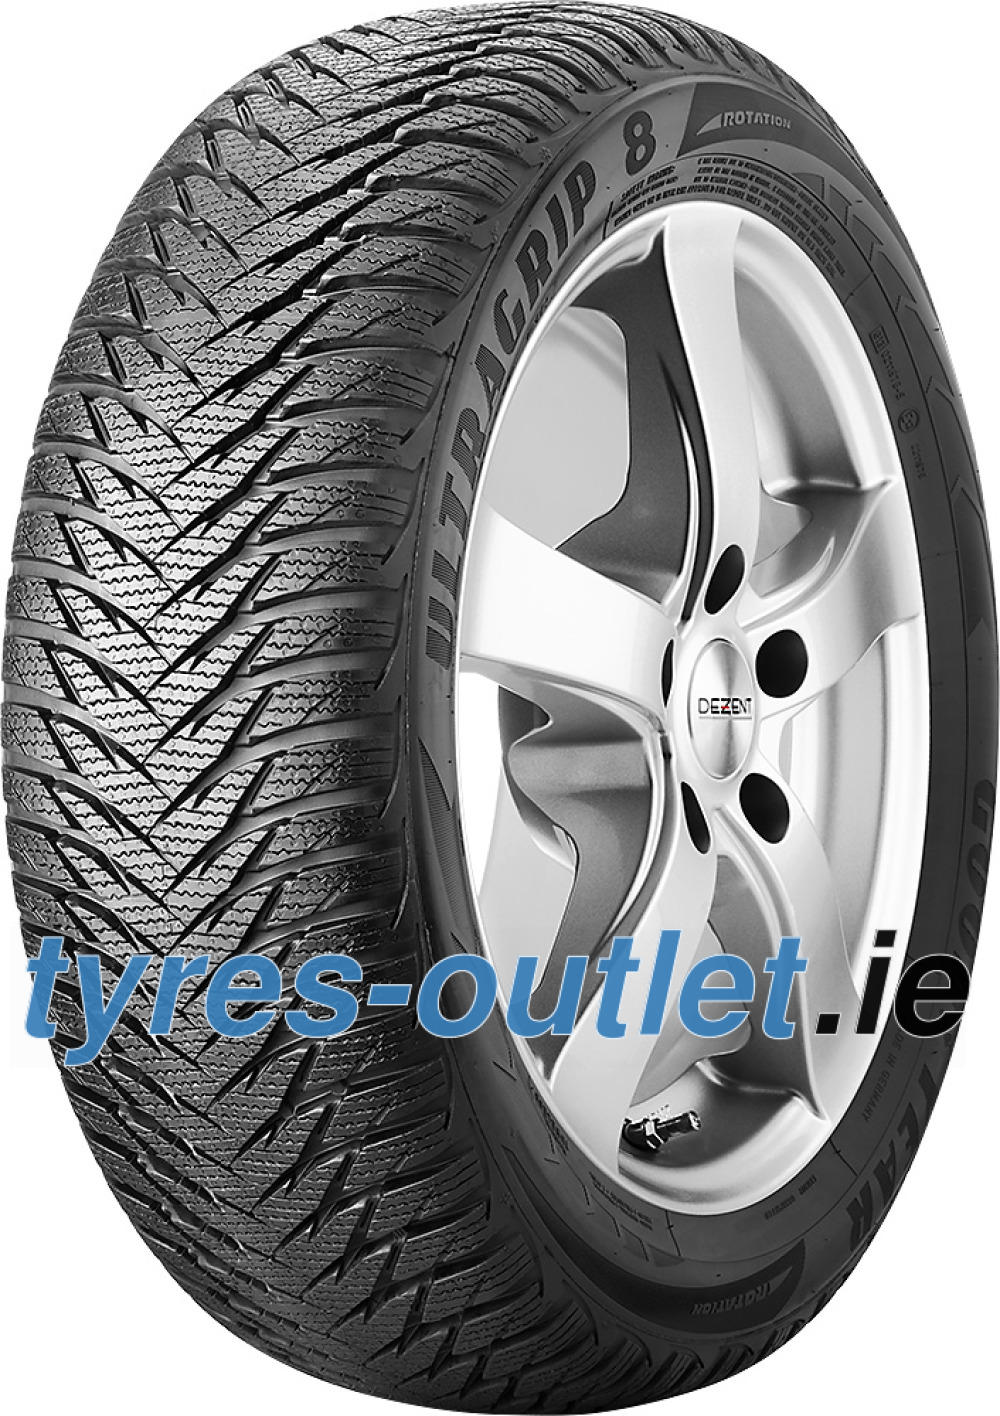 Goodyear UltraGrip 8 ( LT195/60 R16C 99/97T 6PR , with rim protection (MFS) )